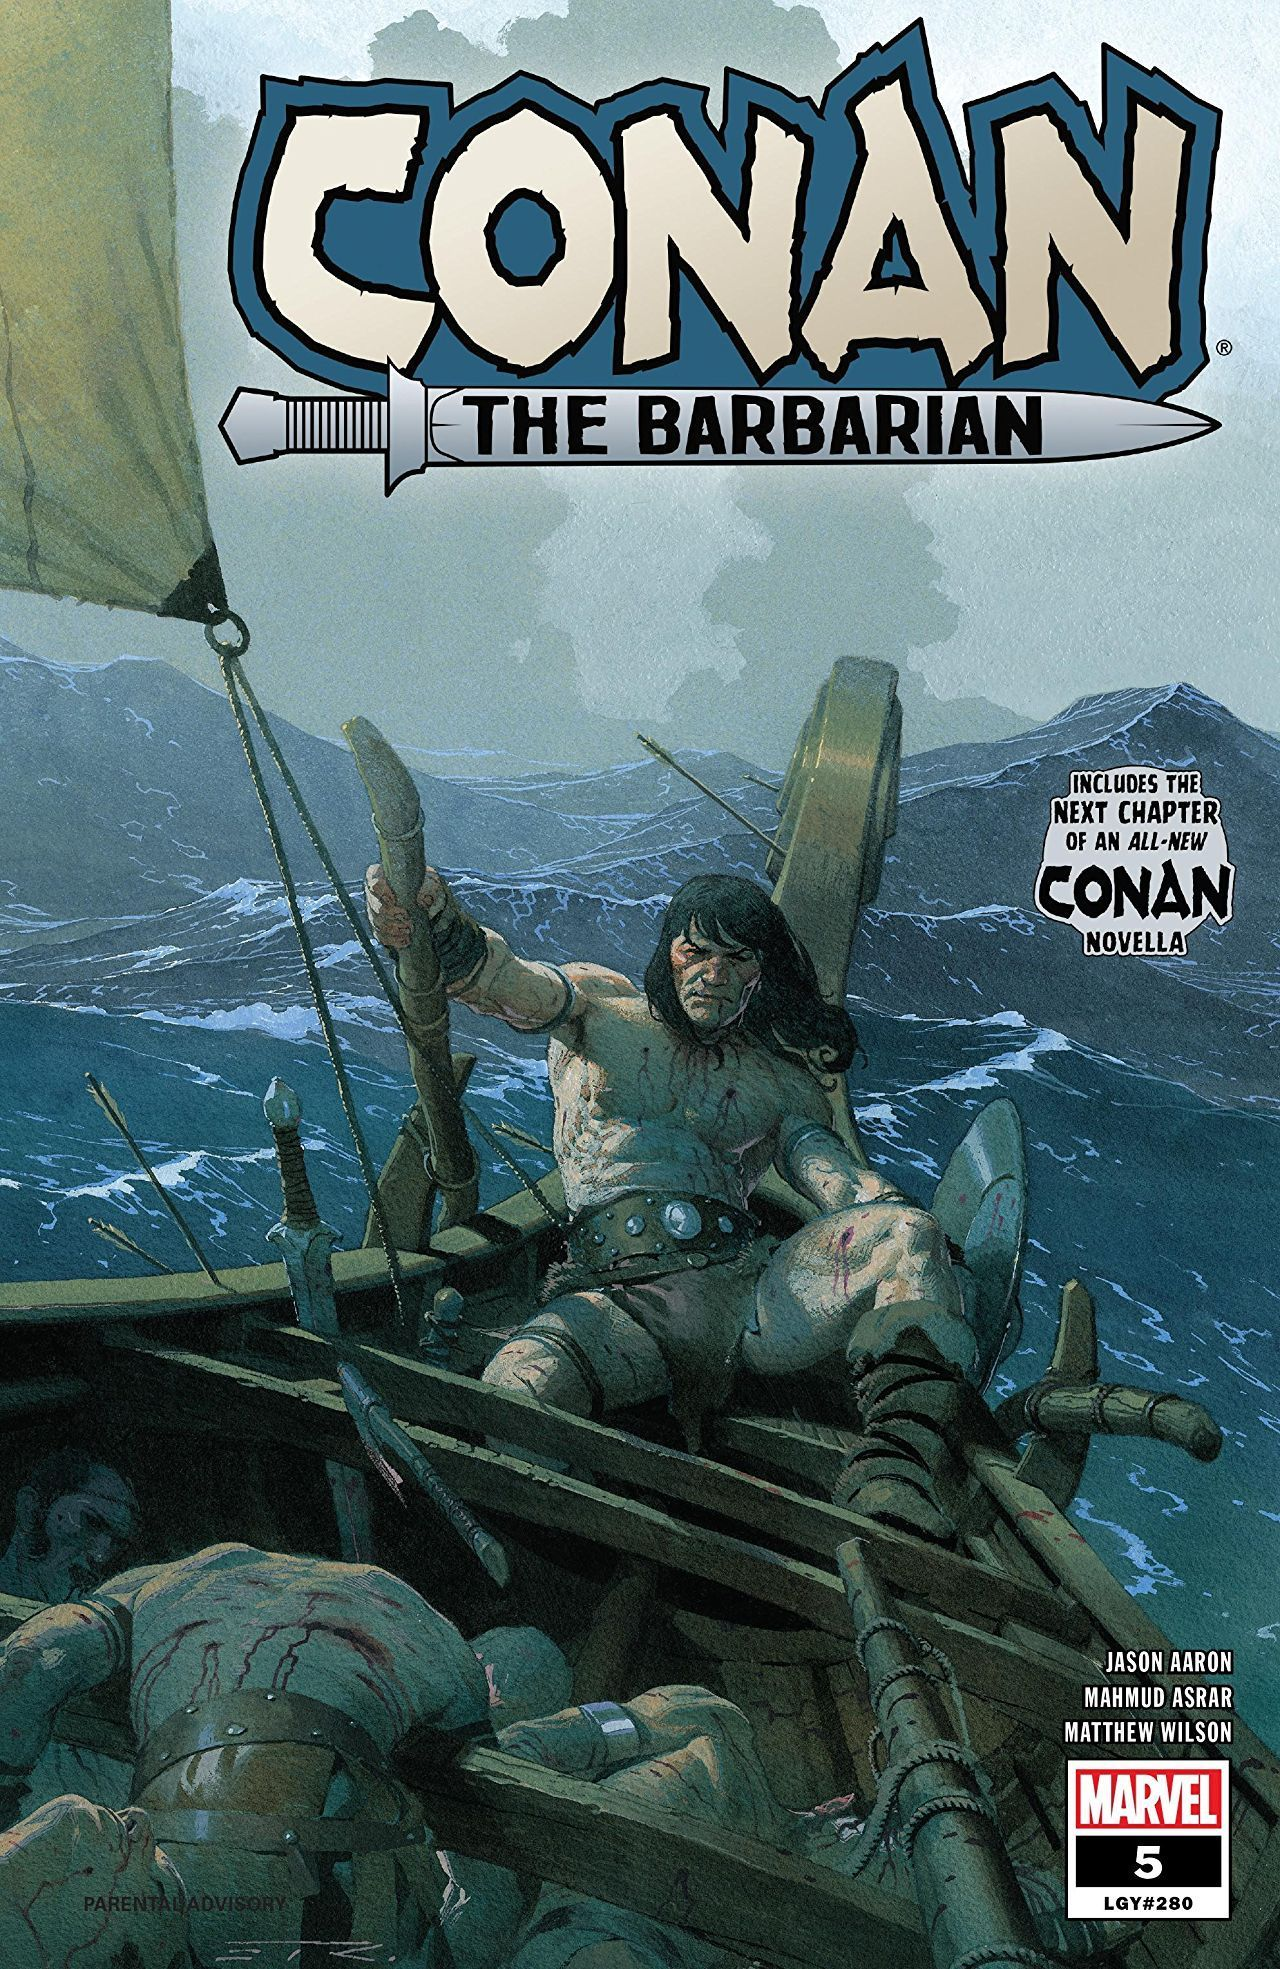 Conan the Barbarian # 5 review